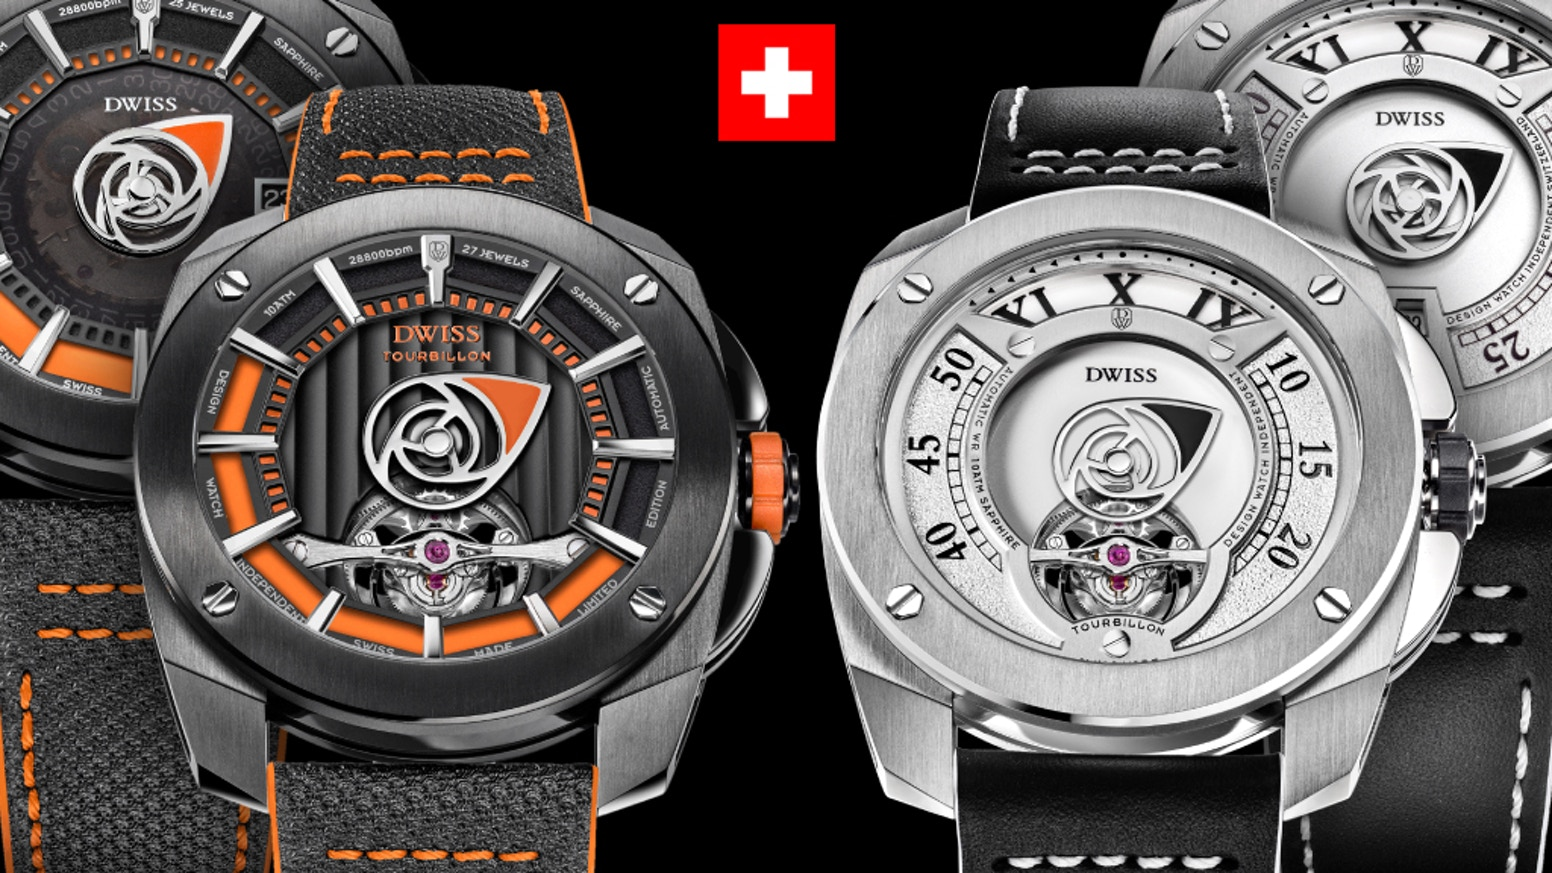 The only Swiss Made tourbillon ever presented and funded online, in just four (4) minutes. A crowdfunded luxury watch for real!